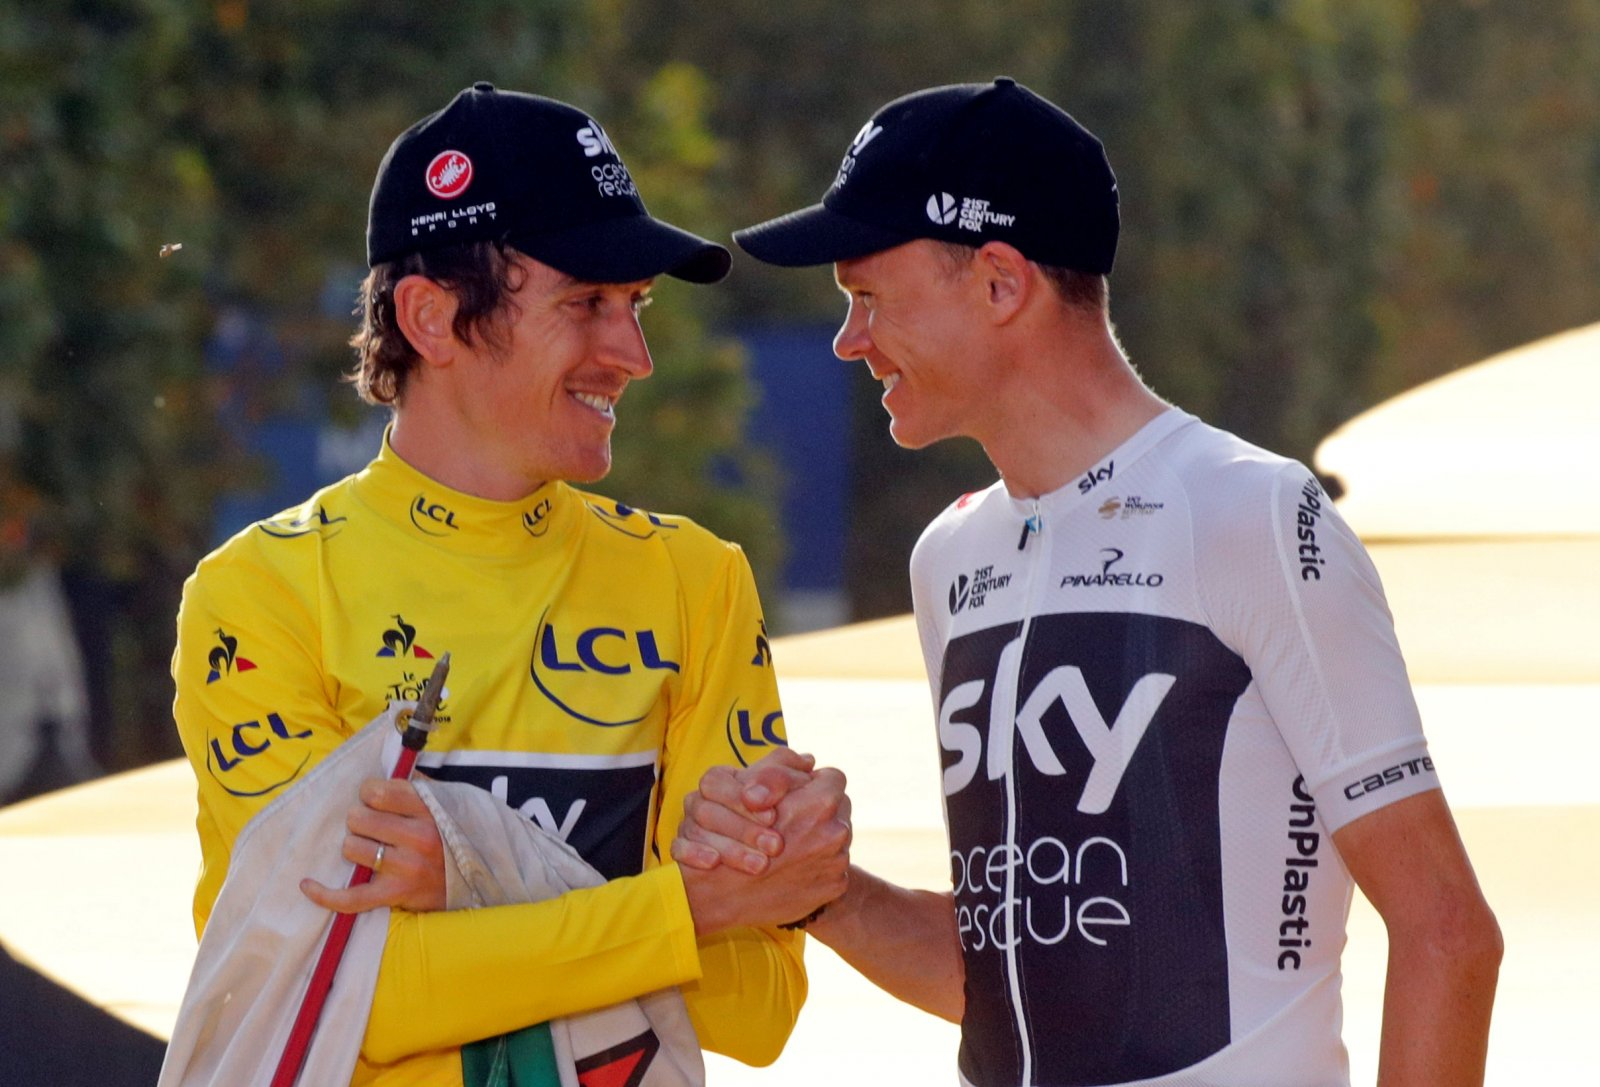 Geraint Thomas and Chris Froome celebrate winning 2018 Tour de France